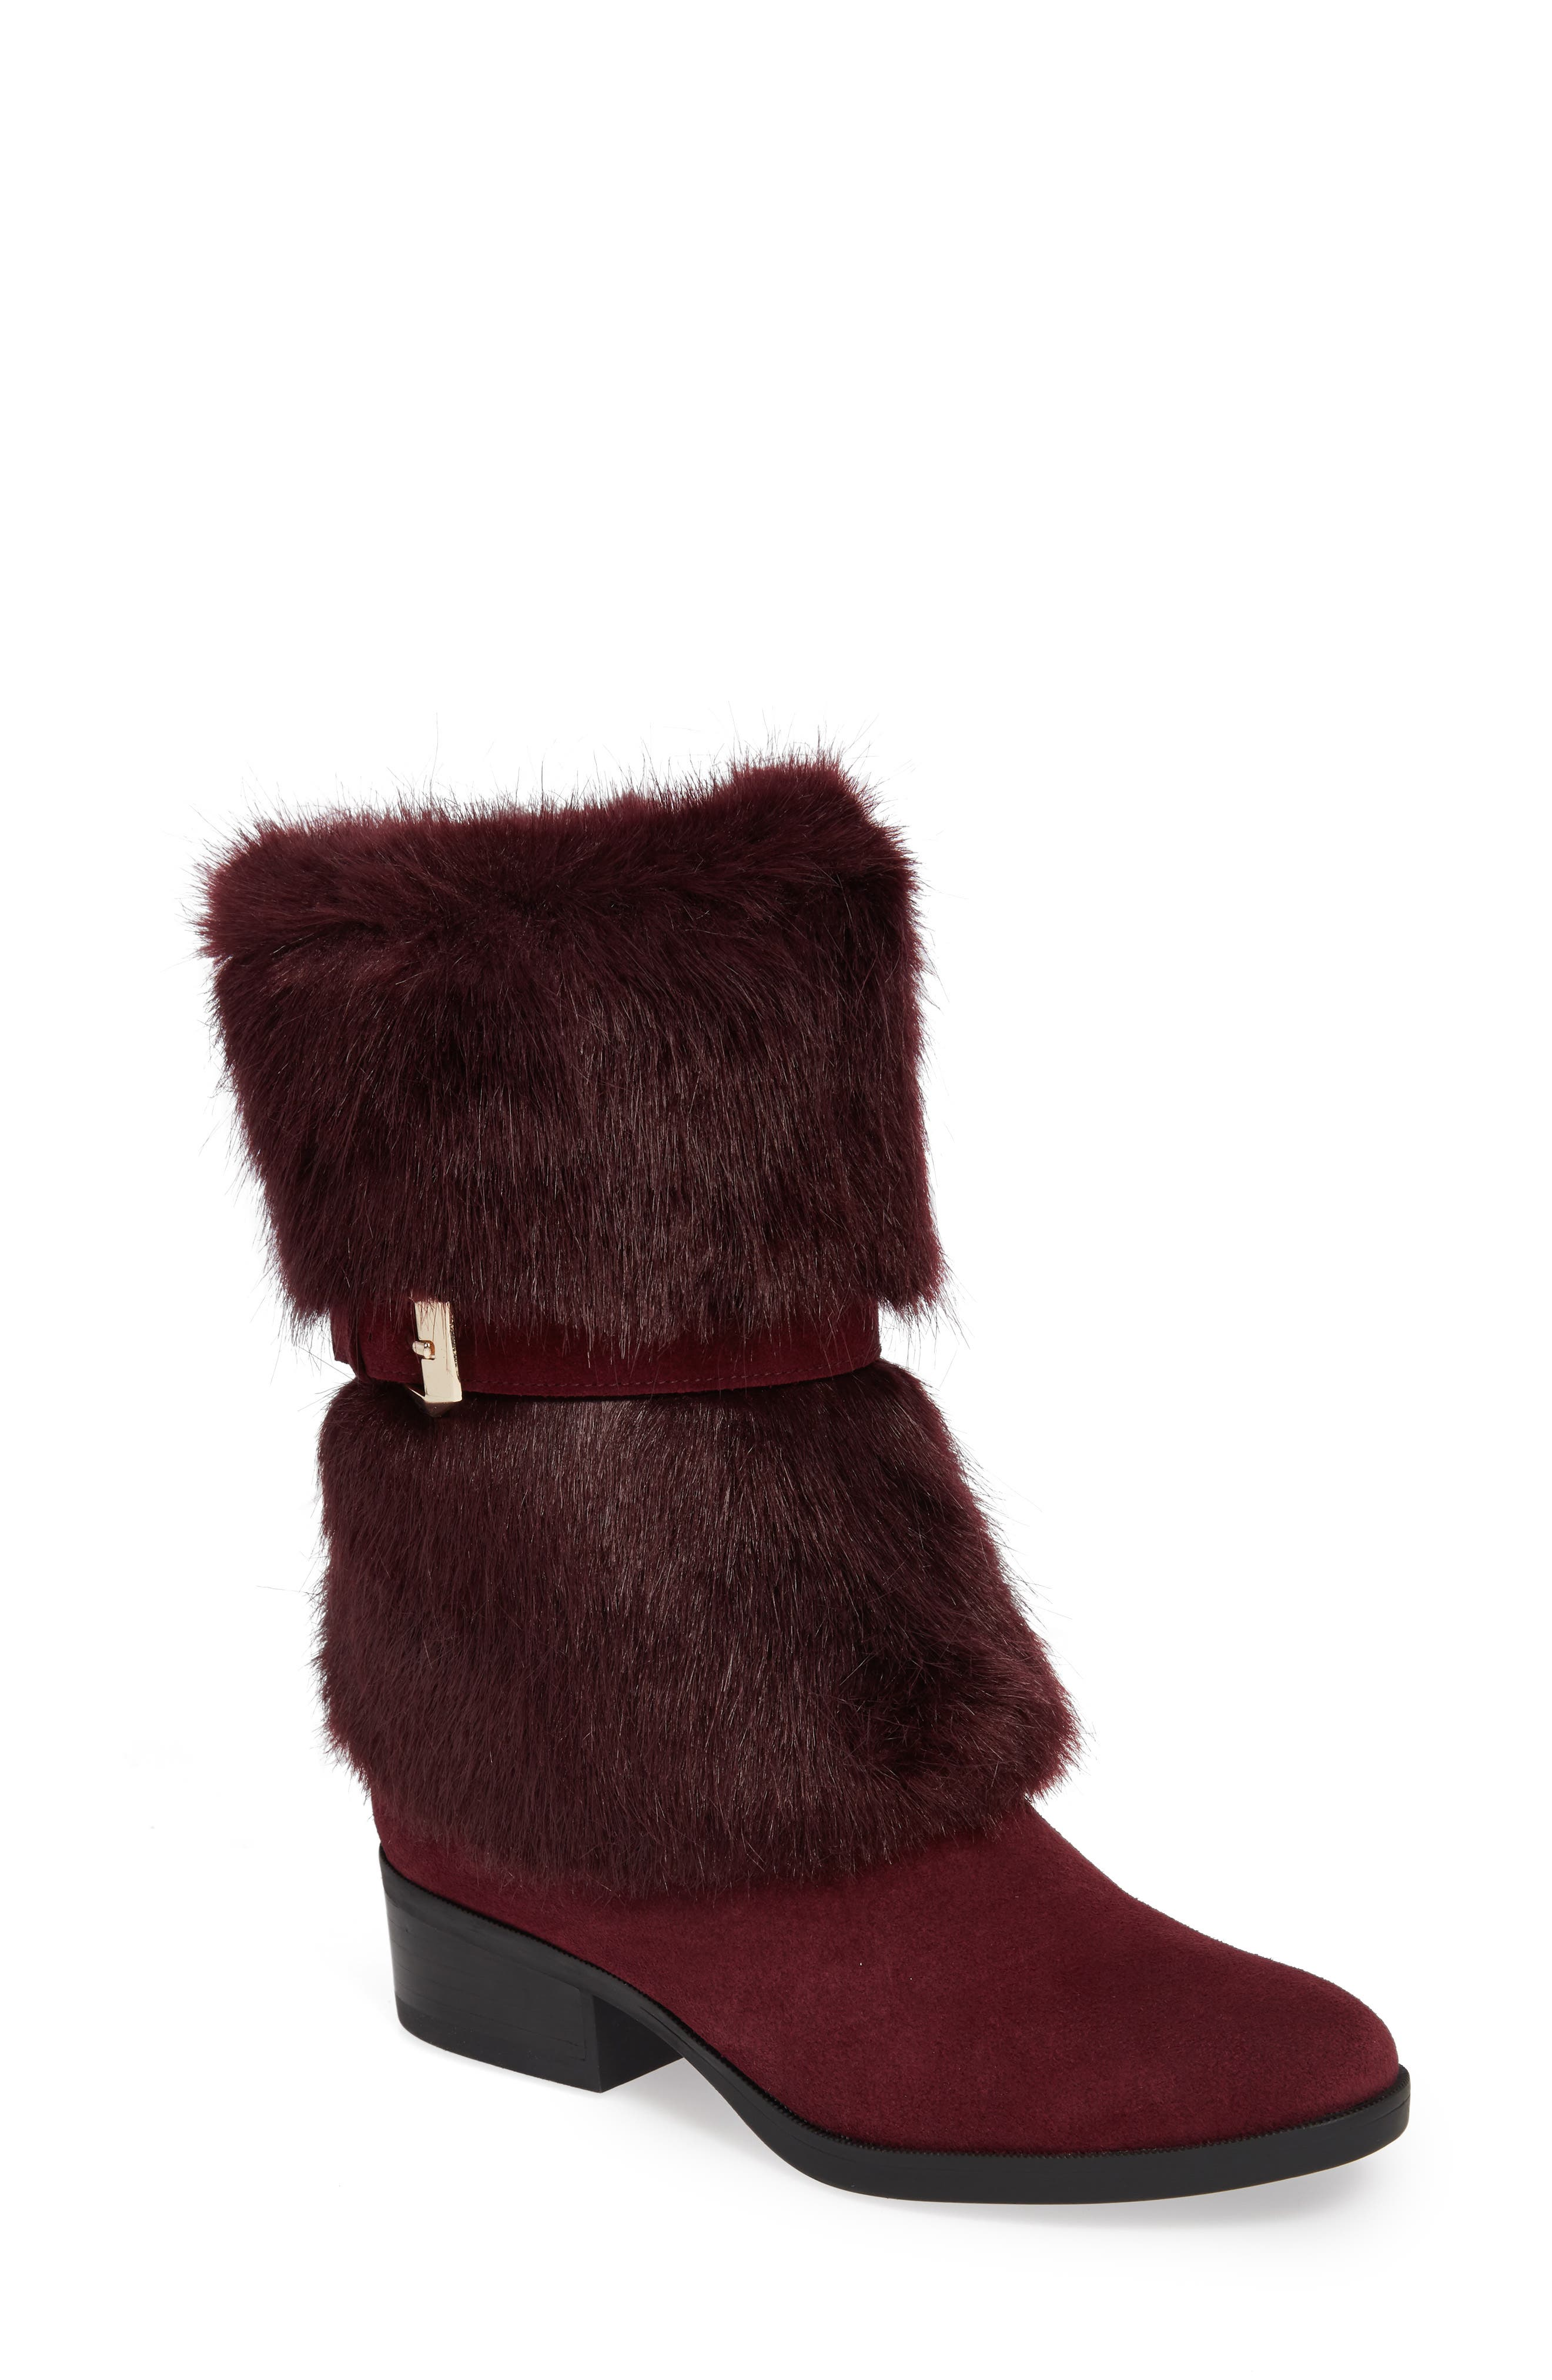 Taryn Rose Giselle Water Resistant Faux Fur Boot- Red